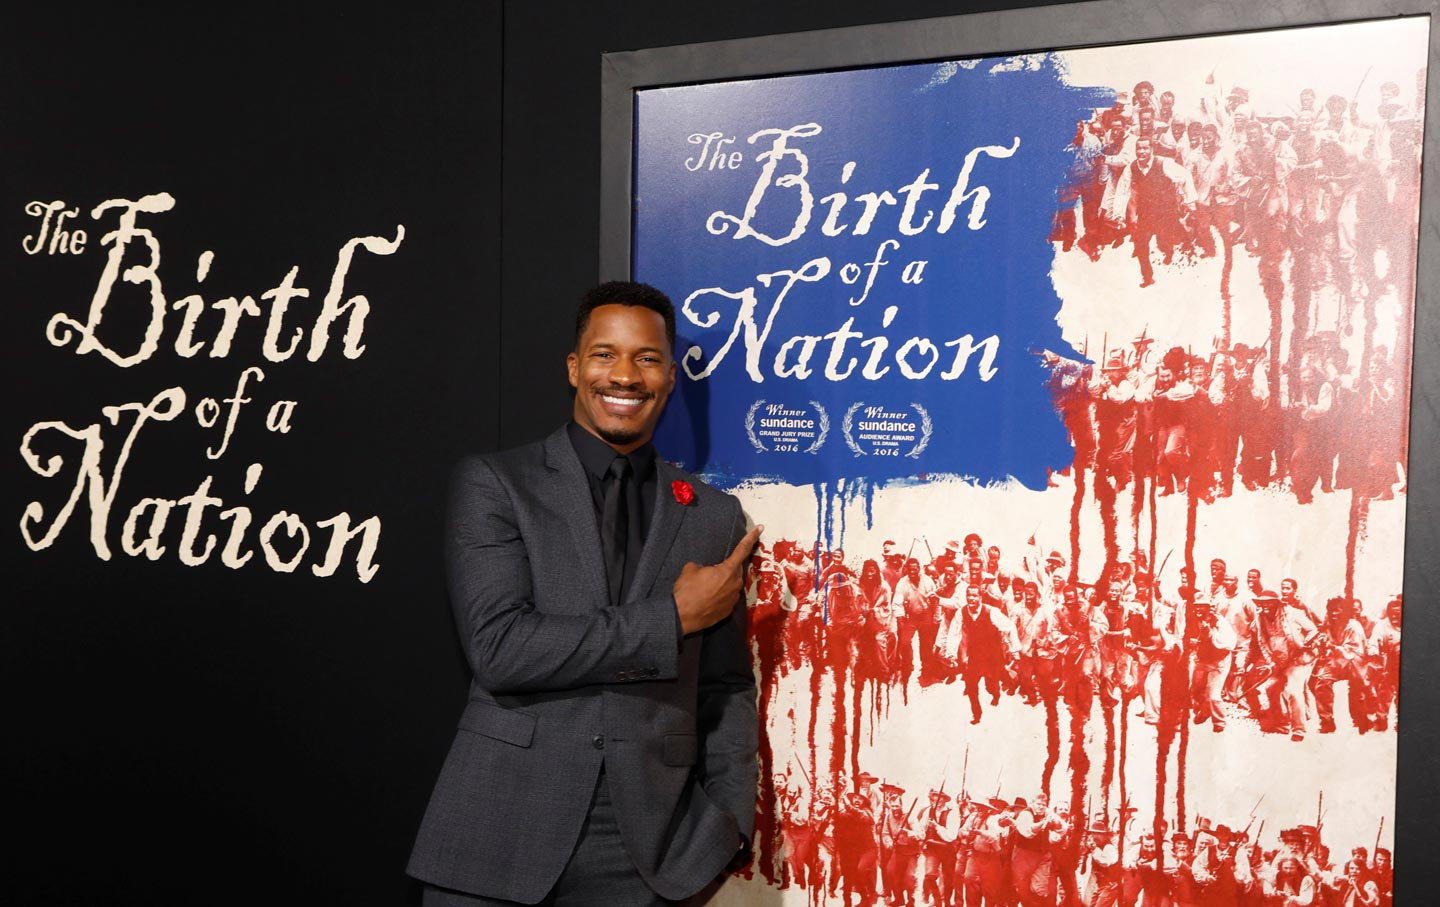 Nate_parker_birth_of_a_nation_rtr_img